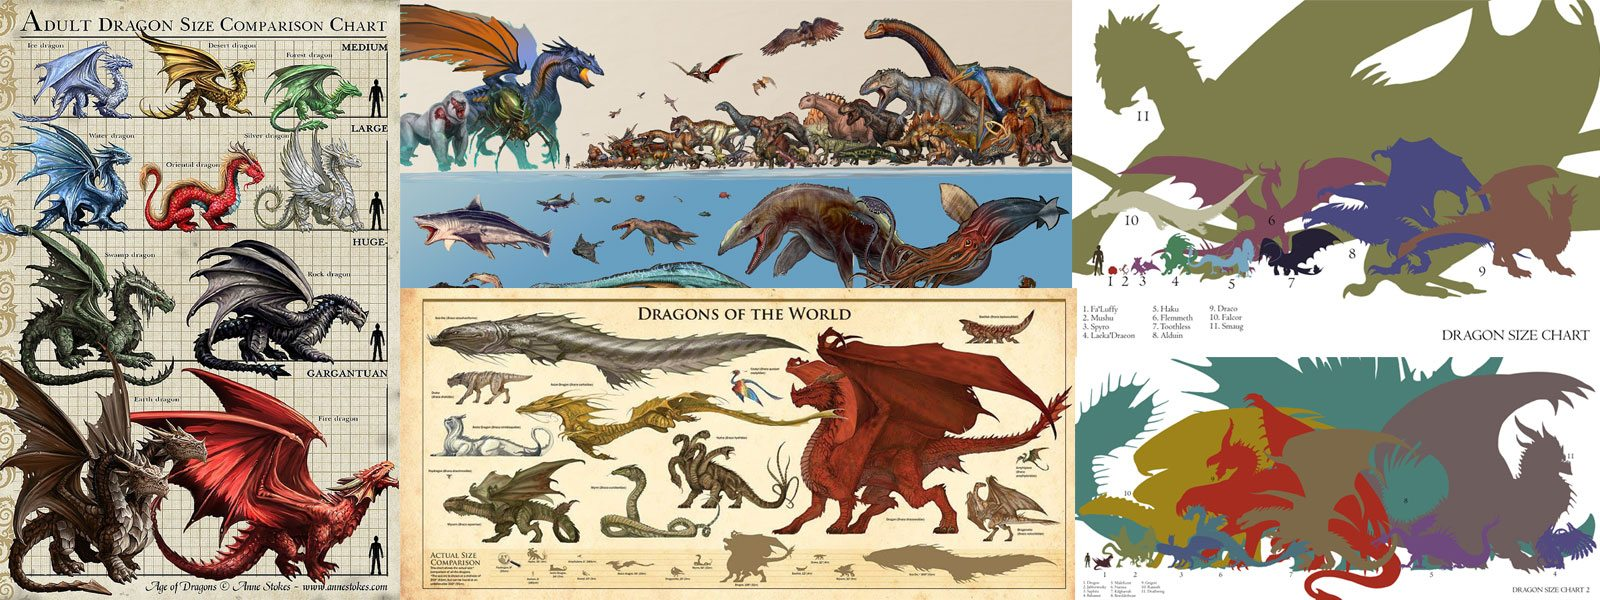 Dragon and Monster Size Comparison Charts D20 D&D DND Dungeons and Dragons Pathfinder Dragons Monsters Compared Human Elf Dinosaurs ARC Sea Creatures